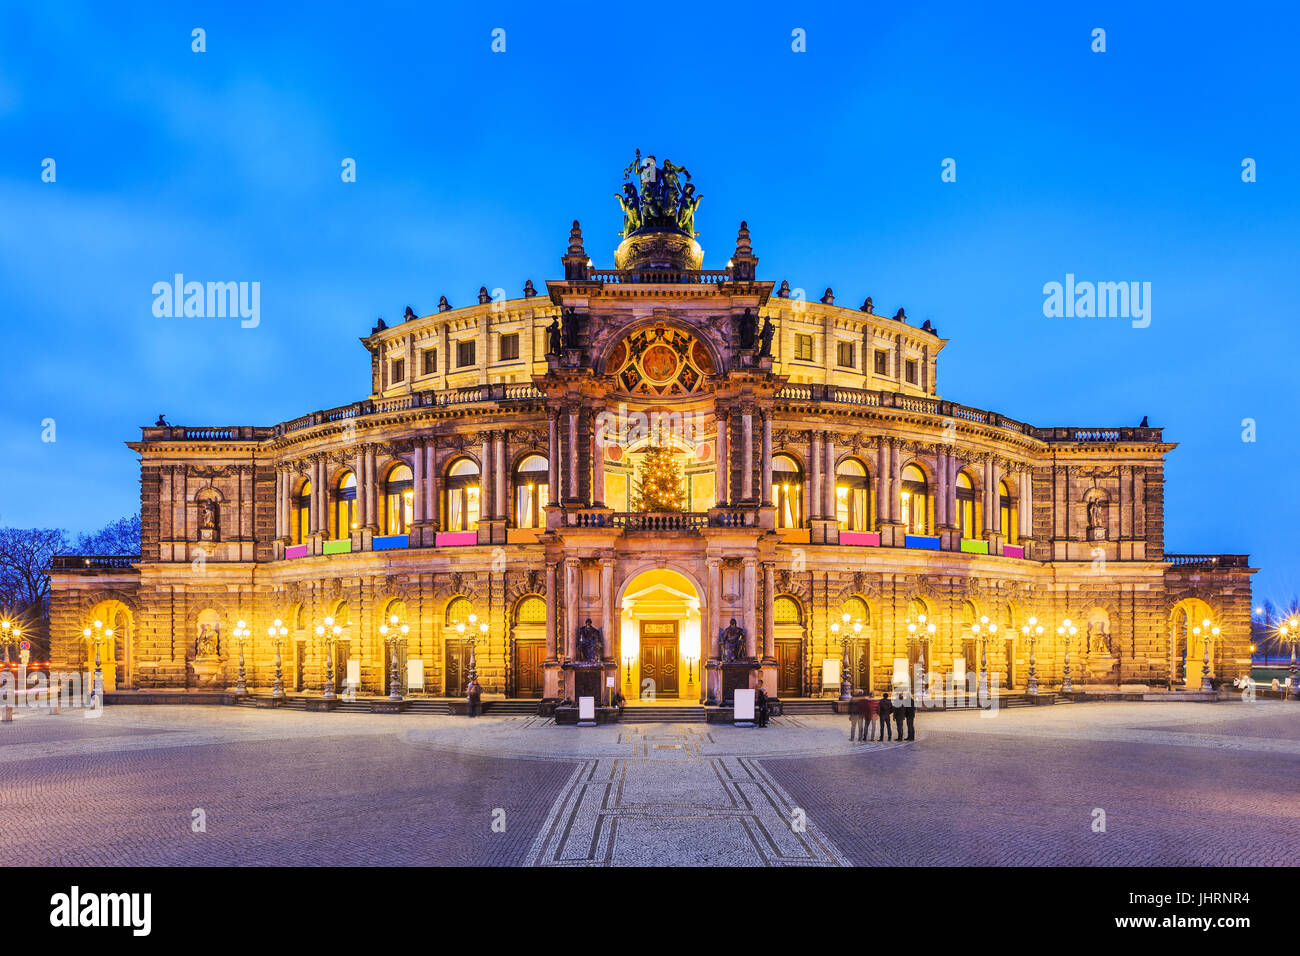 Dresden, Germany. The Semperoper - The Opera House of the Saxon State. - Stock Image